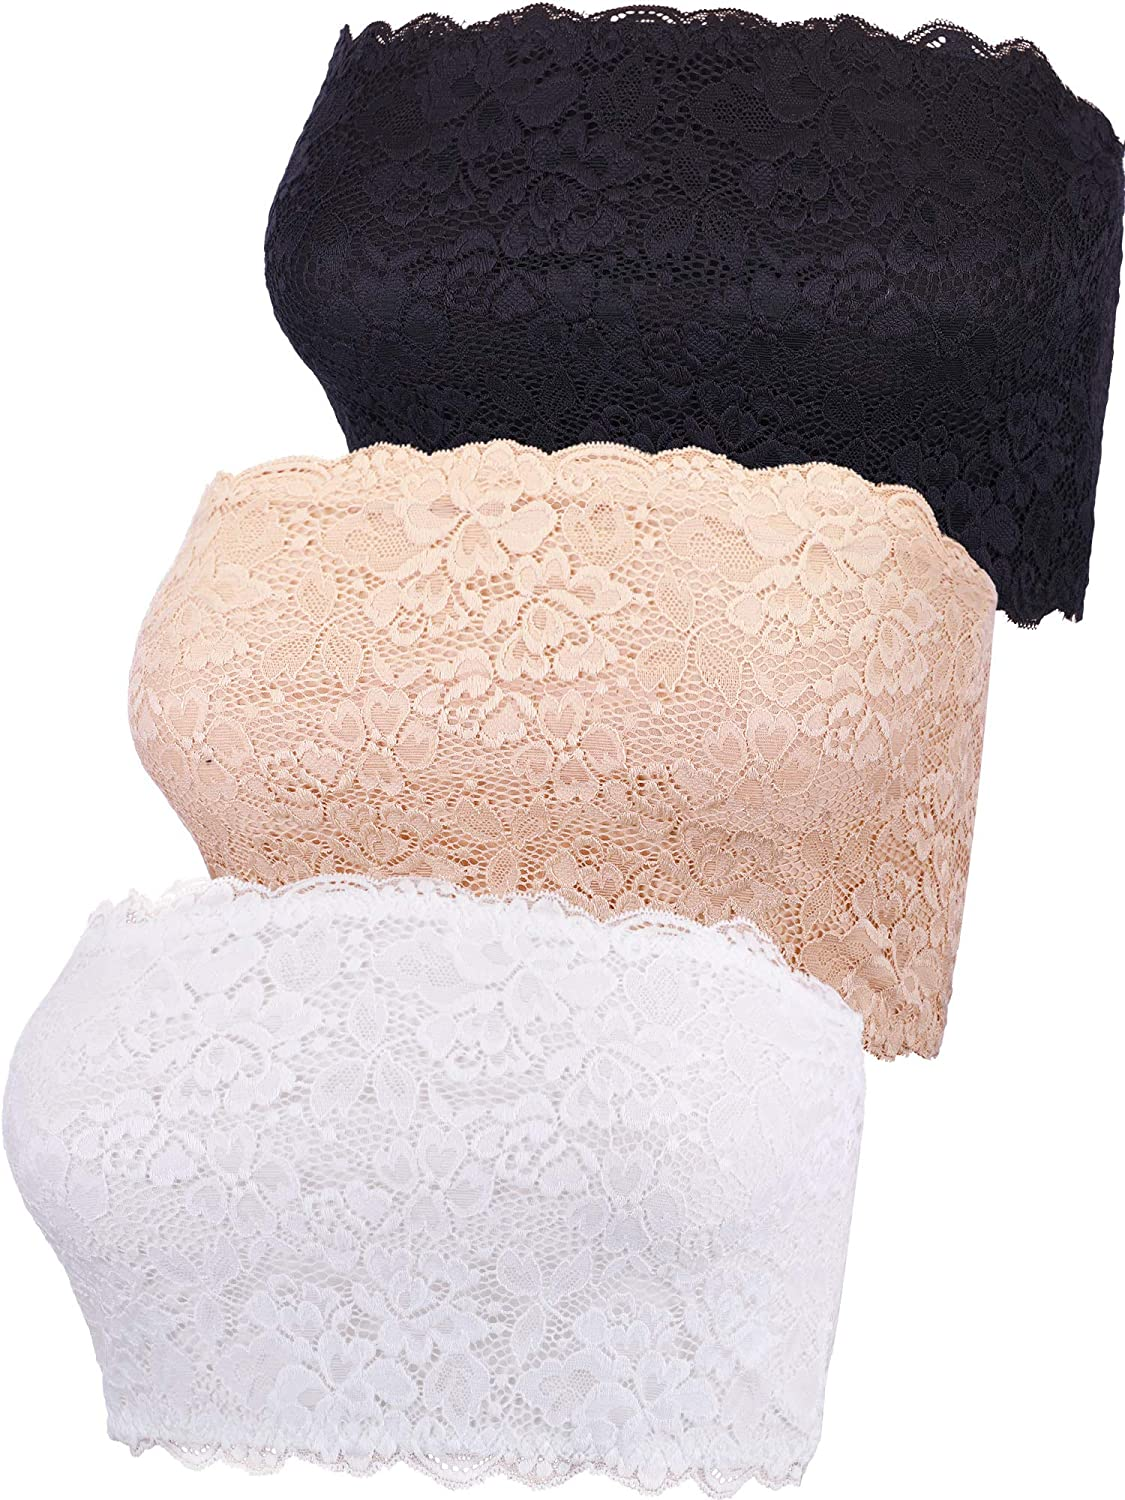 Boao 3 Pieces Women's Floral Lace Tube Top